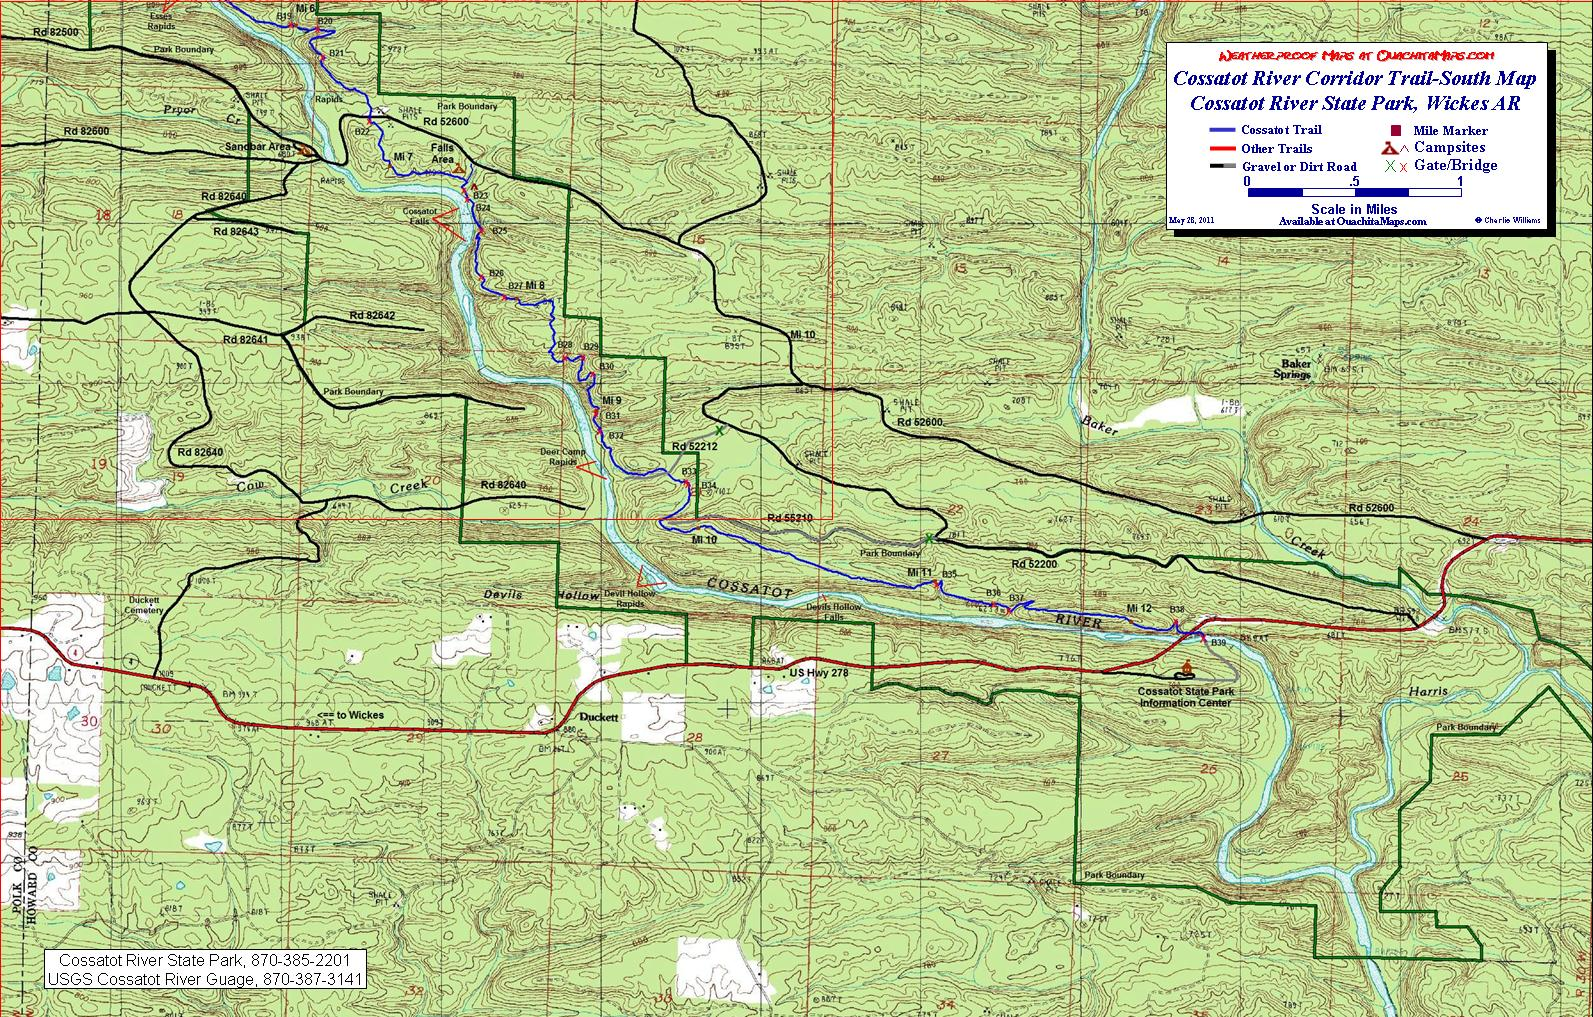 State Parks In Arkansas Map.Cossatot River Corridor Trail Wickes Arkansas Free Detailed Topo Map